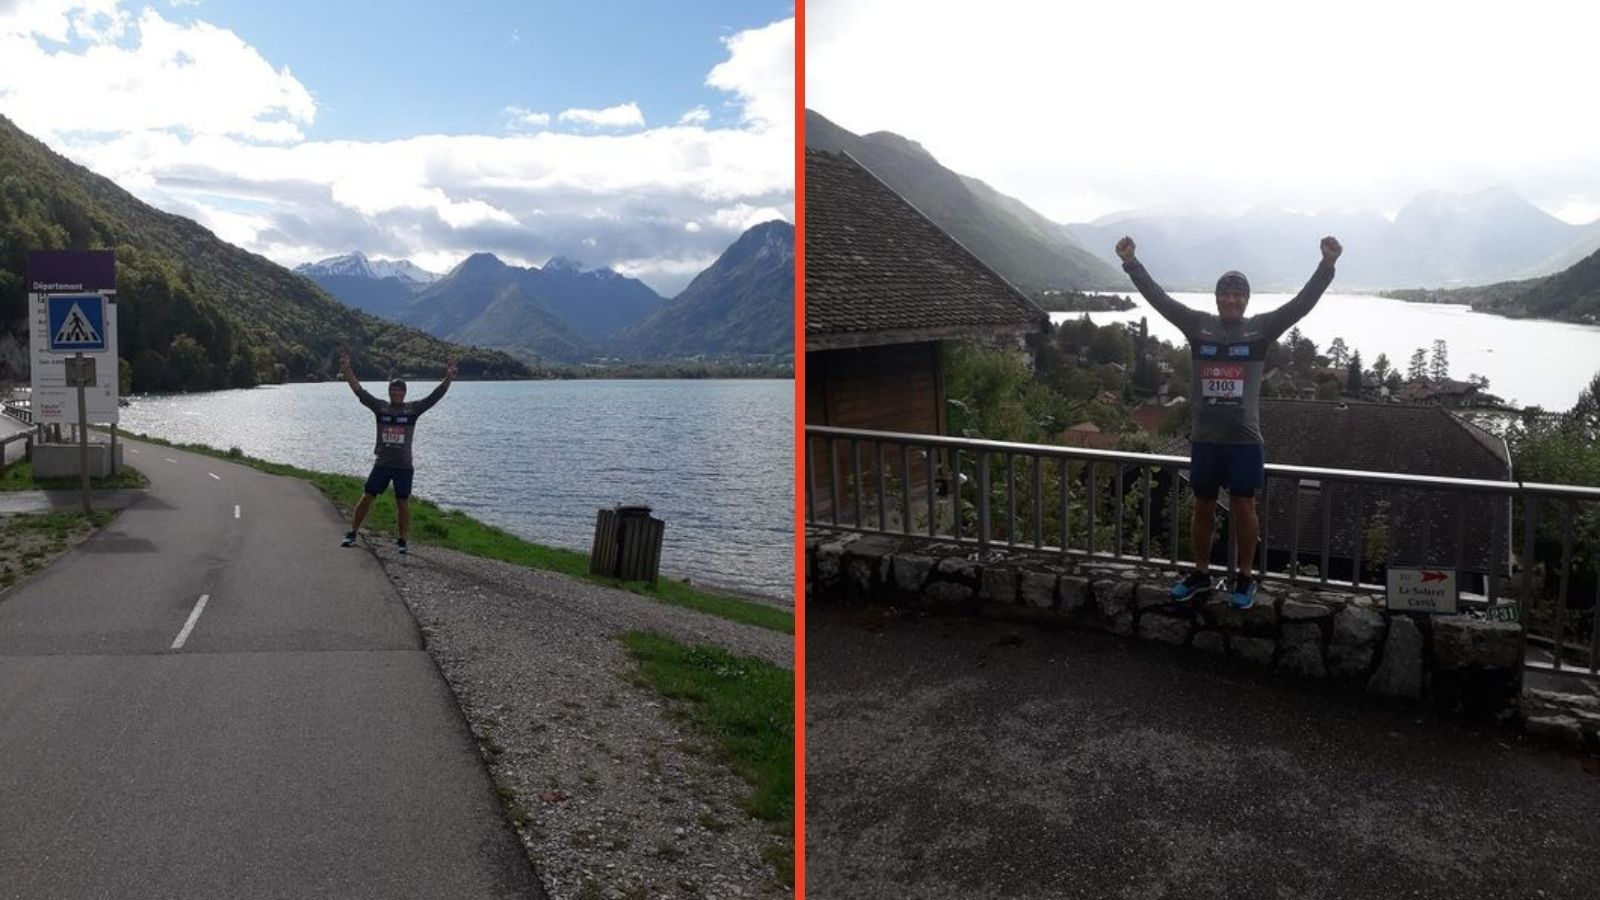 pictures of Mark during his run with long reaching views of Lake Annecy in the background